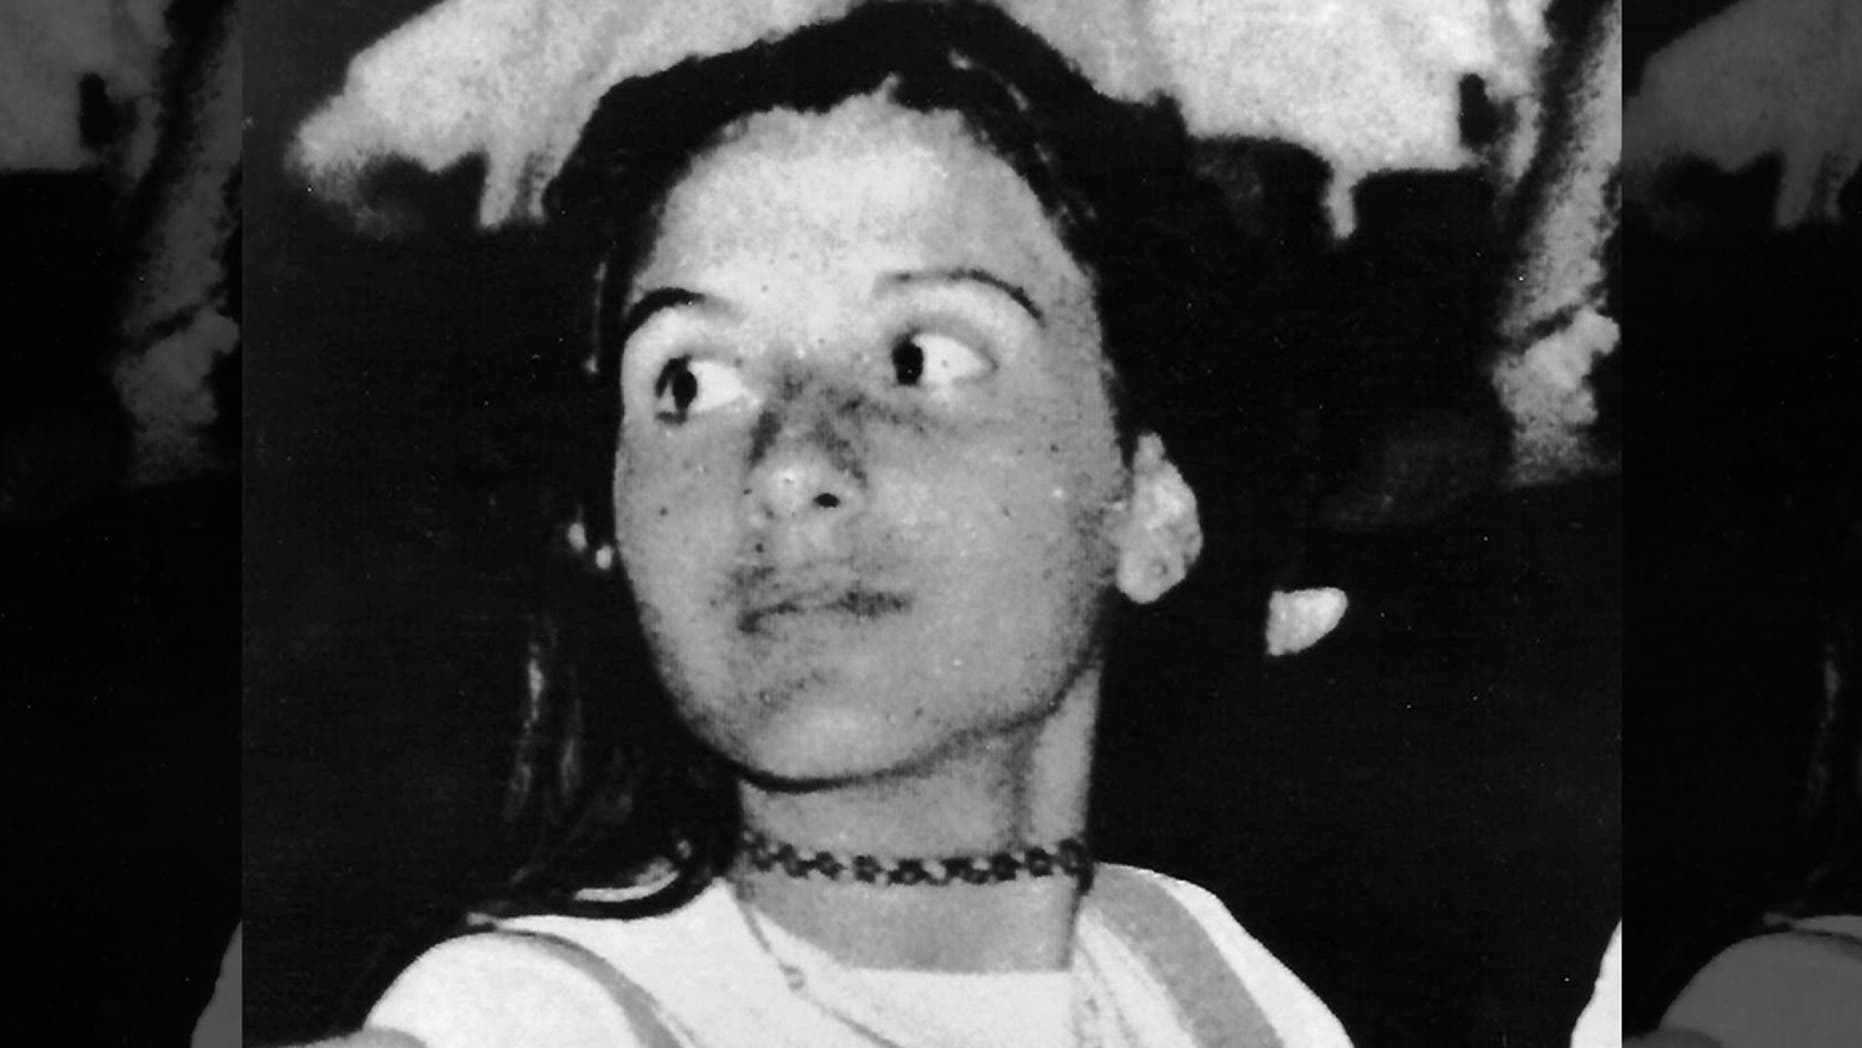 Human bones were uncovered amid renovation efforts near the Vatican's embassy in Rome, reigniting discussions about a Vatican employee's teen daughter who vanished more than three decades ago, according to a report.